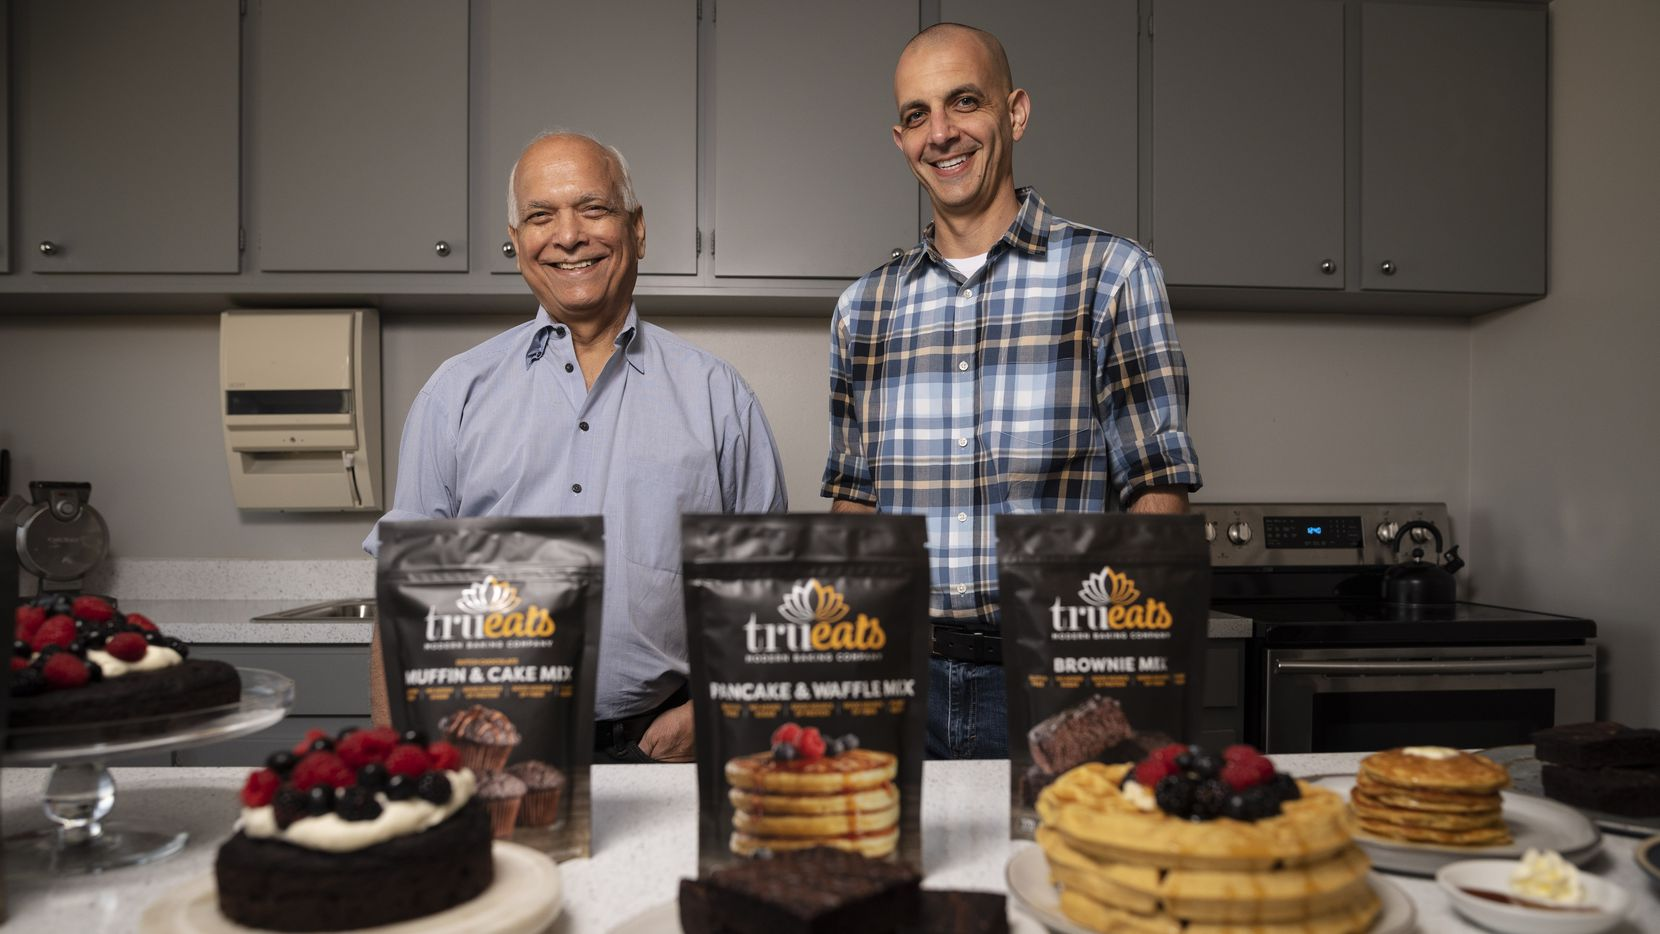 Surinder Kumar, left, CEO-Chief Innovation Officer, and his son Daven Kumar, Co-founder and CMO of Trueats Modern Baking Company, inside a research and development lab at Culinary Focus in Grand Prairie.